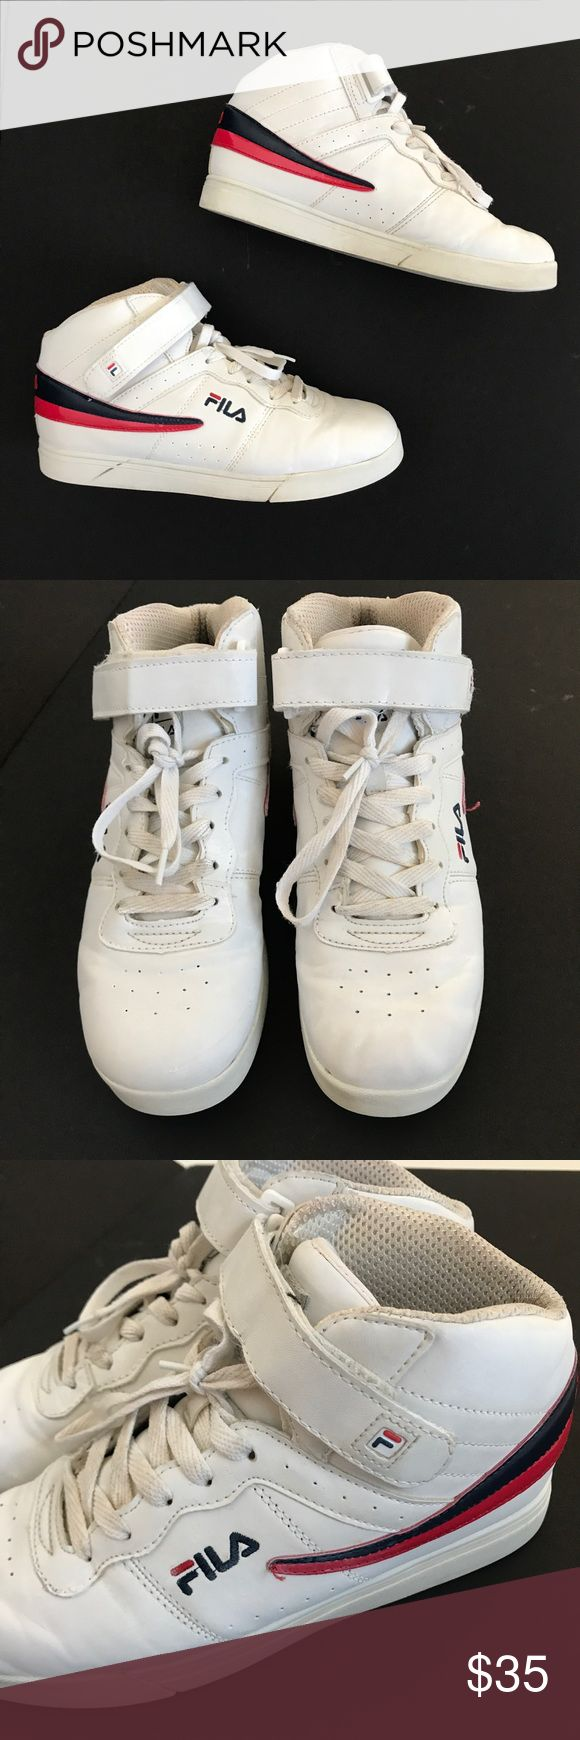 Vtg Fila high tops white red blue Men 7 Women 9 Vtg Fila High Top Basketball Shoes Men 7 Women 9 White Red Blue Retro Sneakers   Mens size 7, women's size 9   Normal wear. See photos Fila Shoes Sneakers